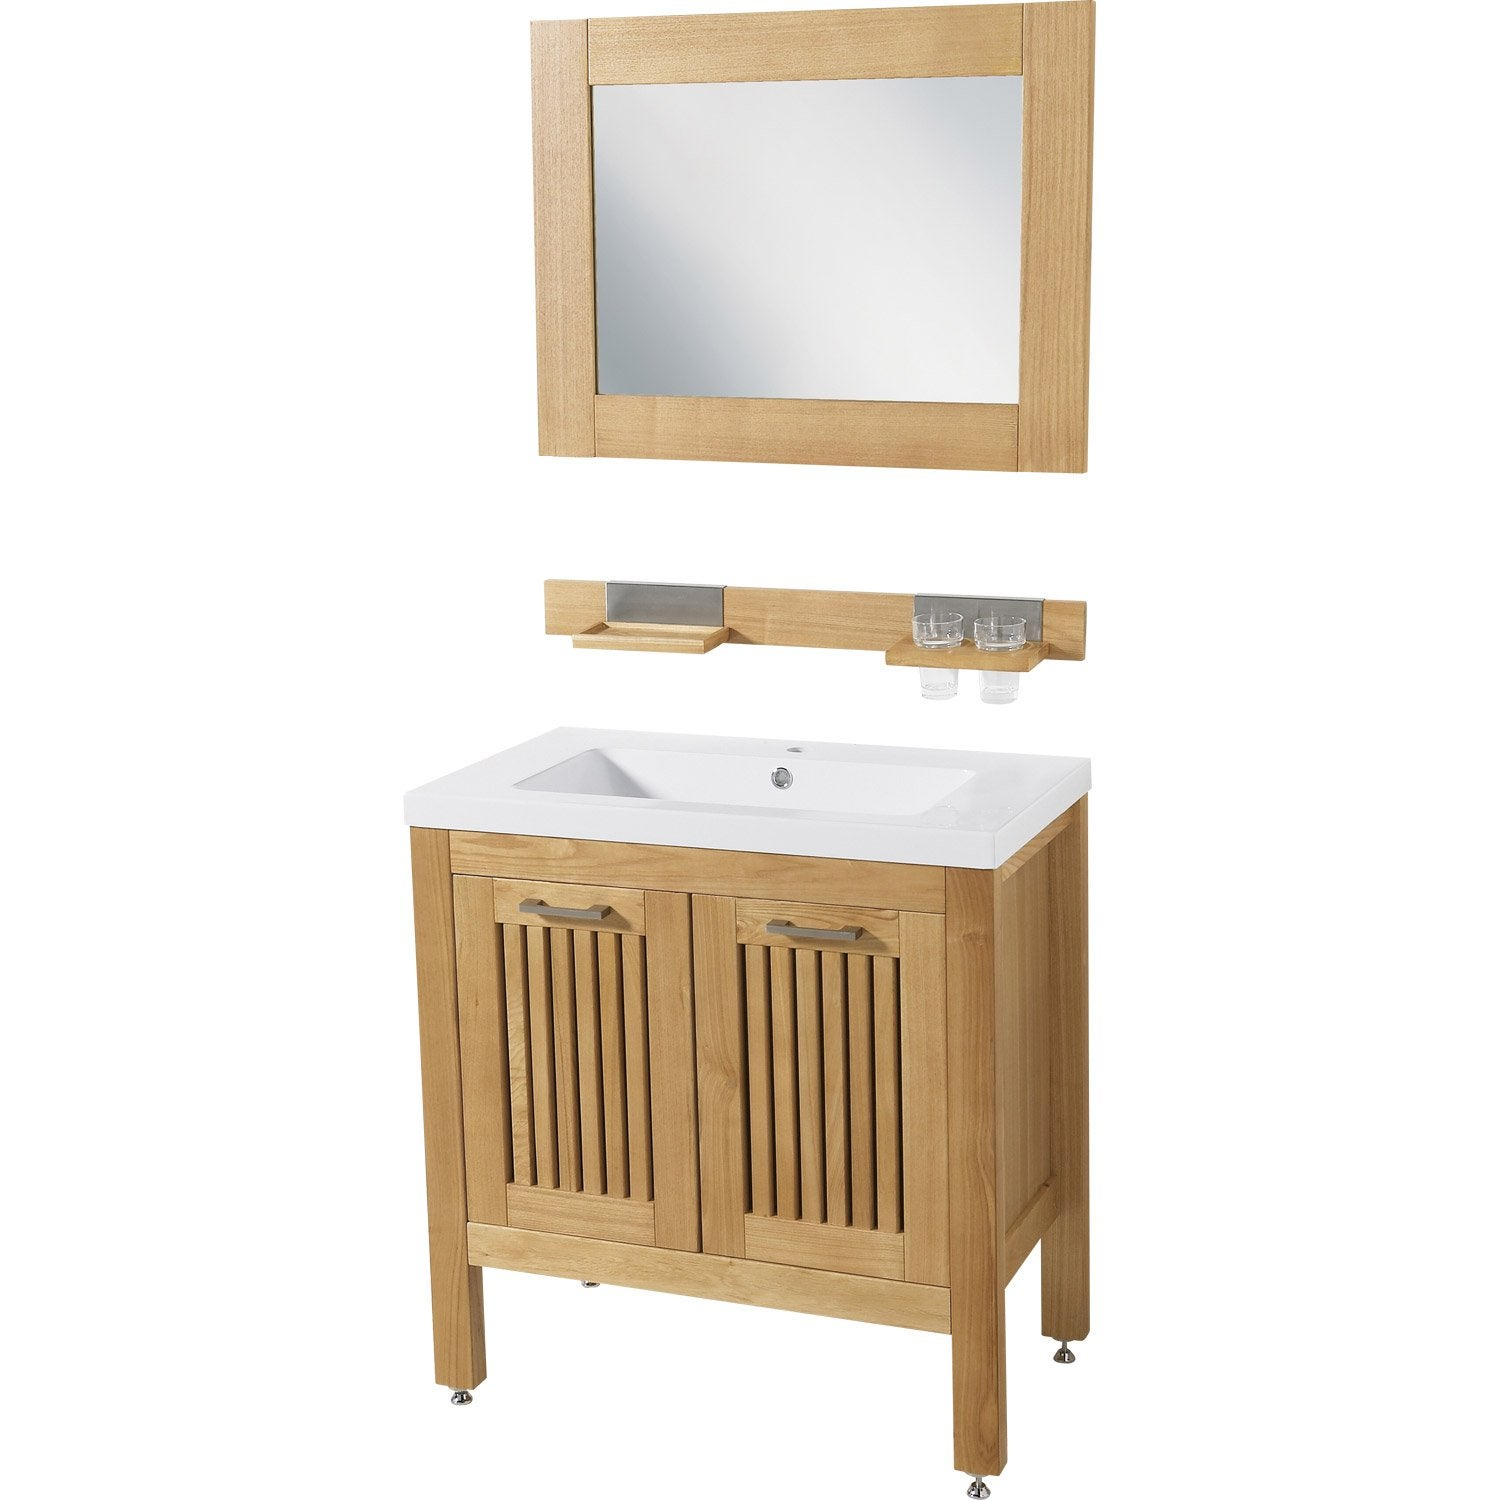 Mobilier table leroy merlin meuble sous lavabo for Sous meuble lavabo